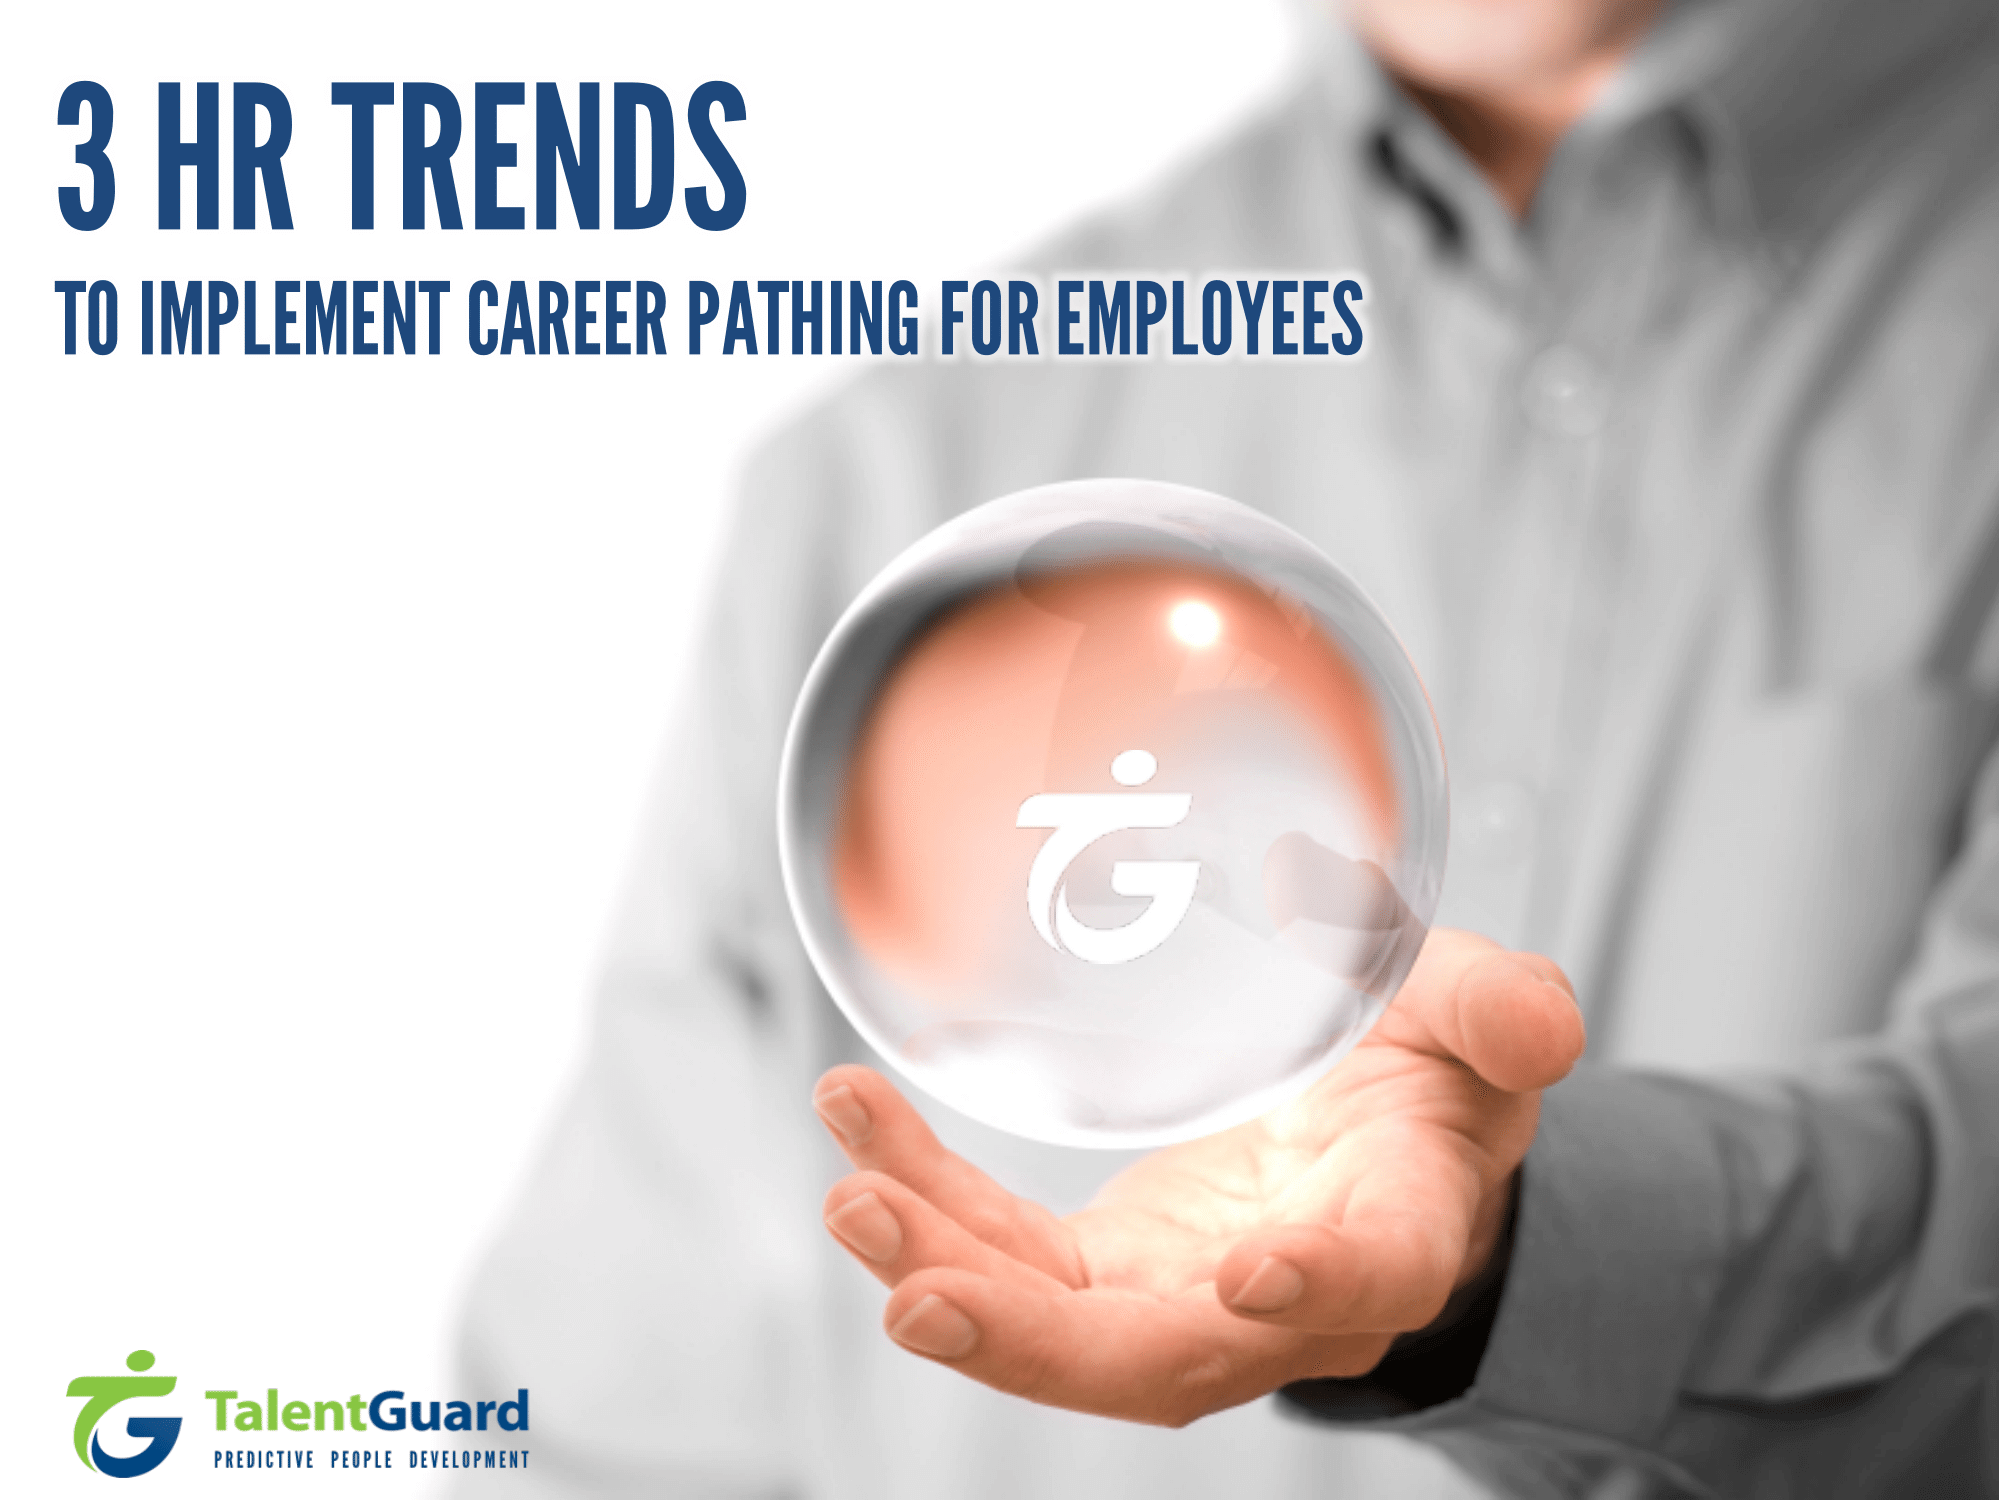 3 HR Trends for Career Pathing Employees-